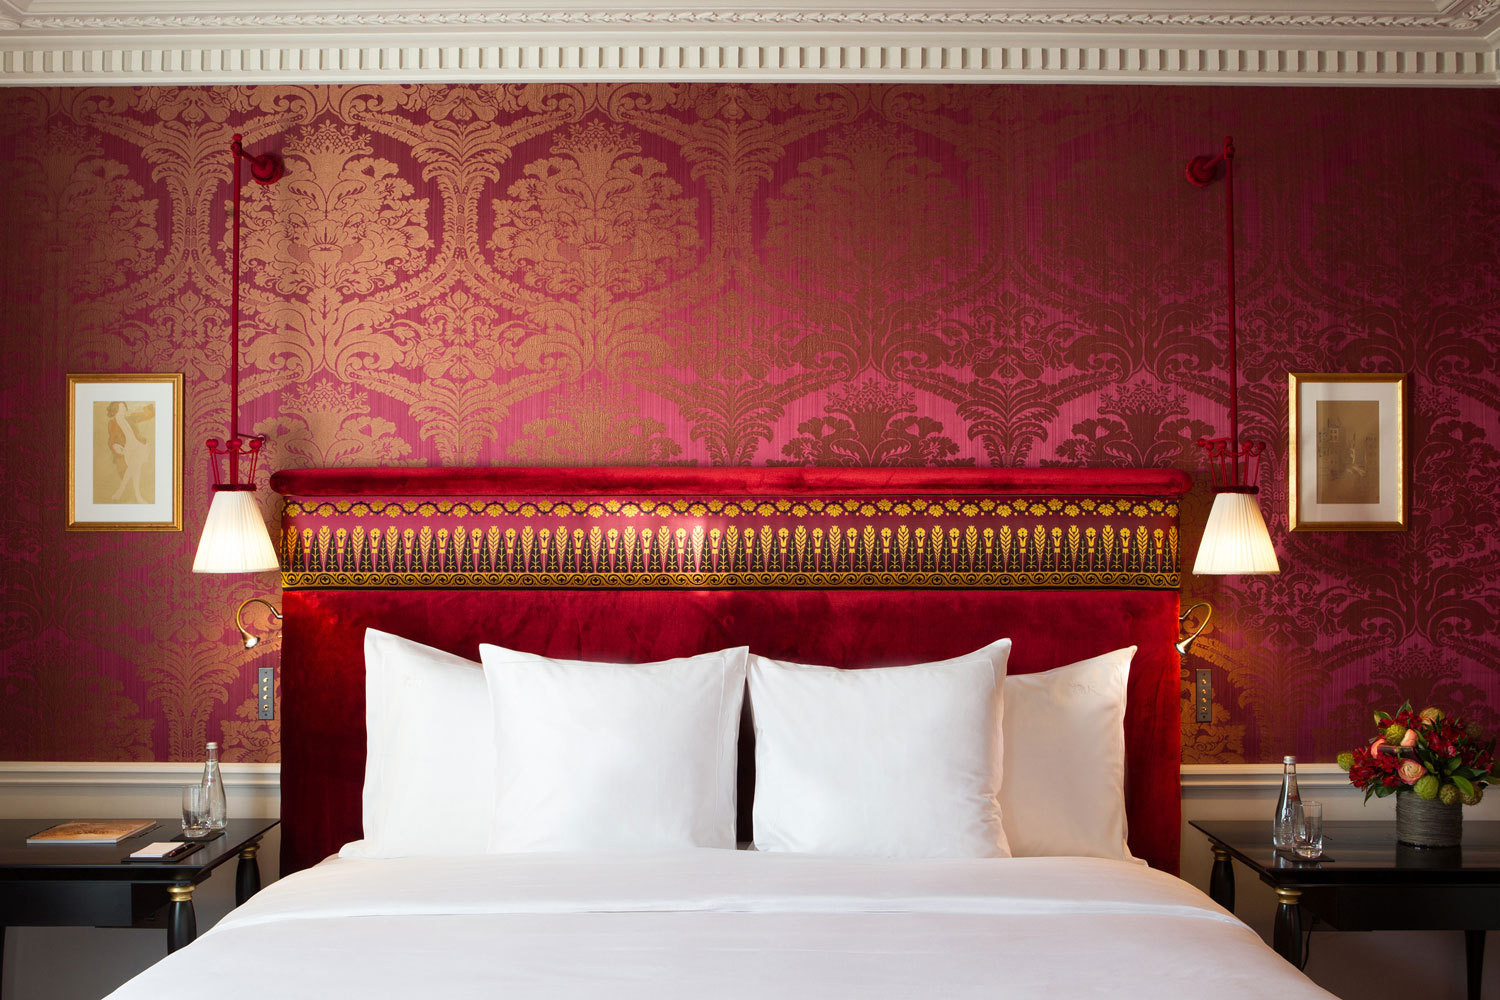 Damask-covered walls and velvet headboards are just a fewof the Belle Époque–style details on display at the Jacques Garcia–designed La Réserve Paris.